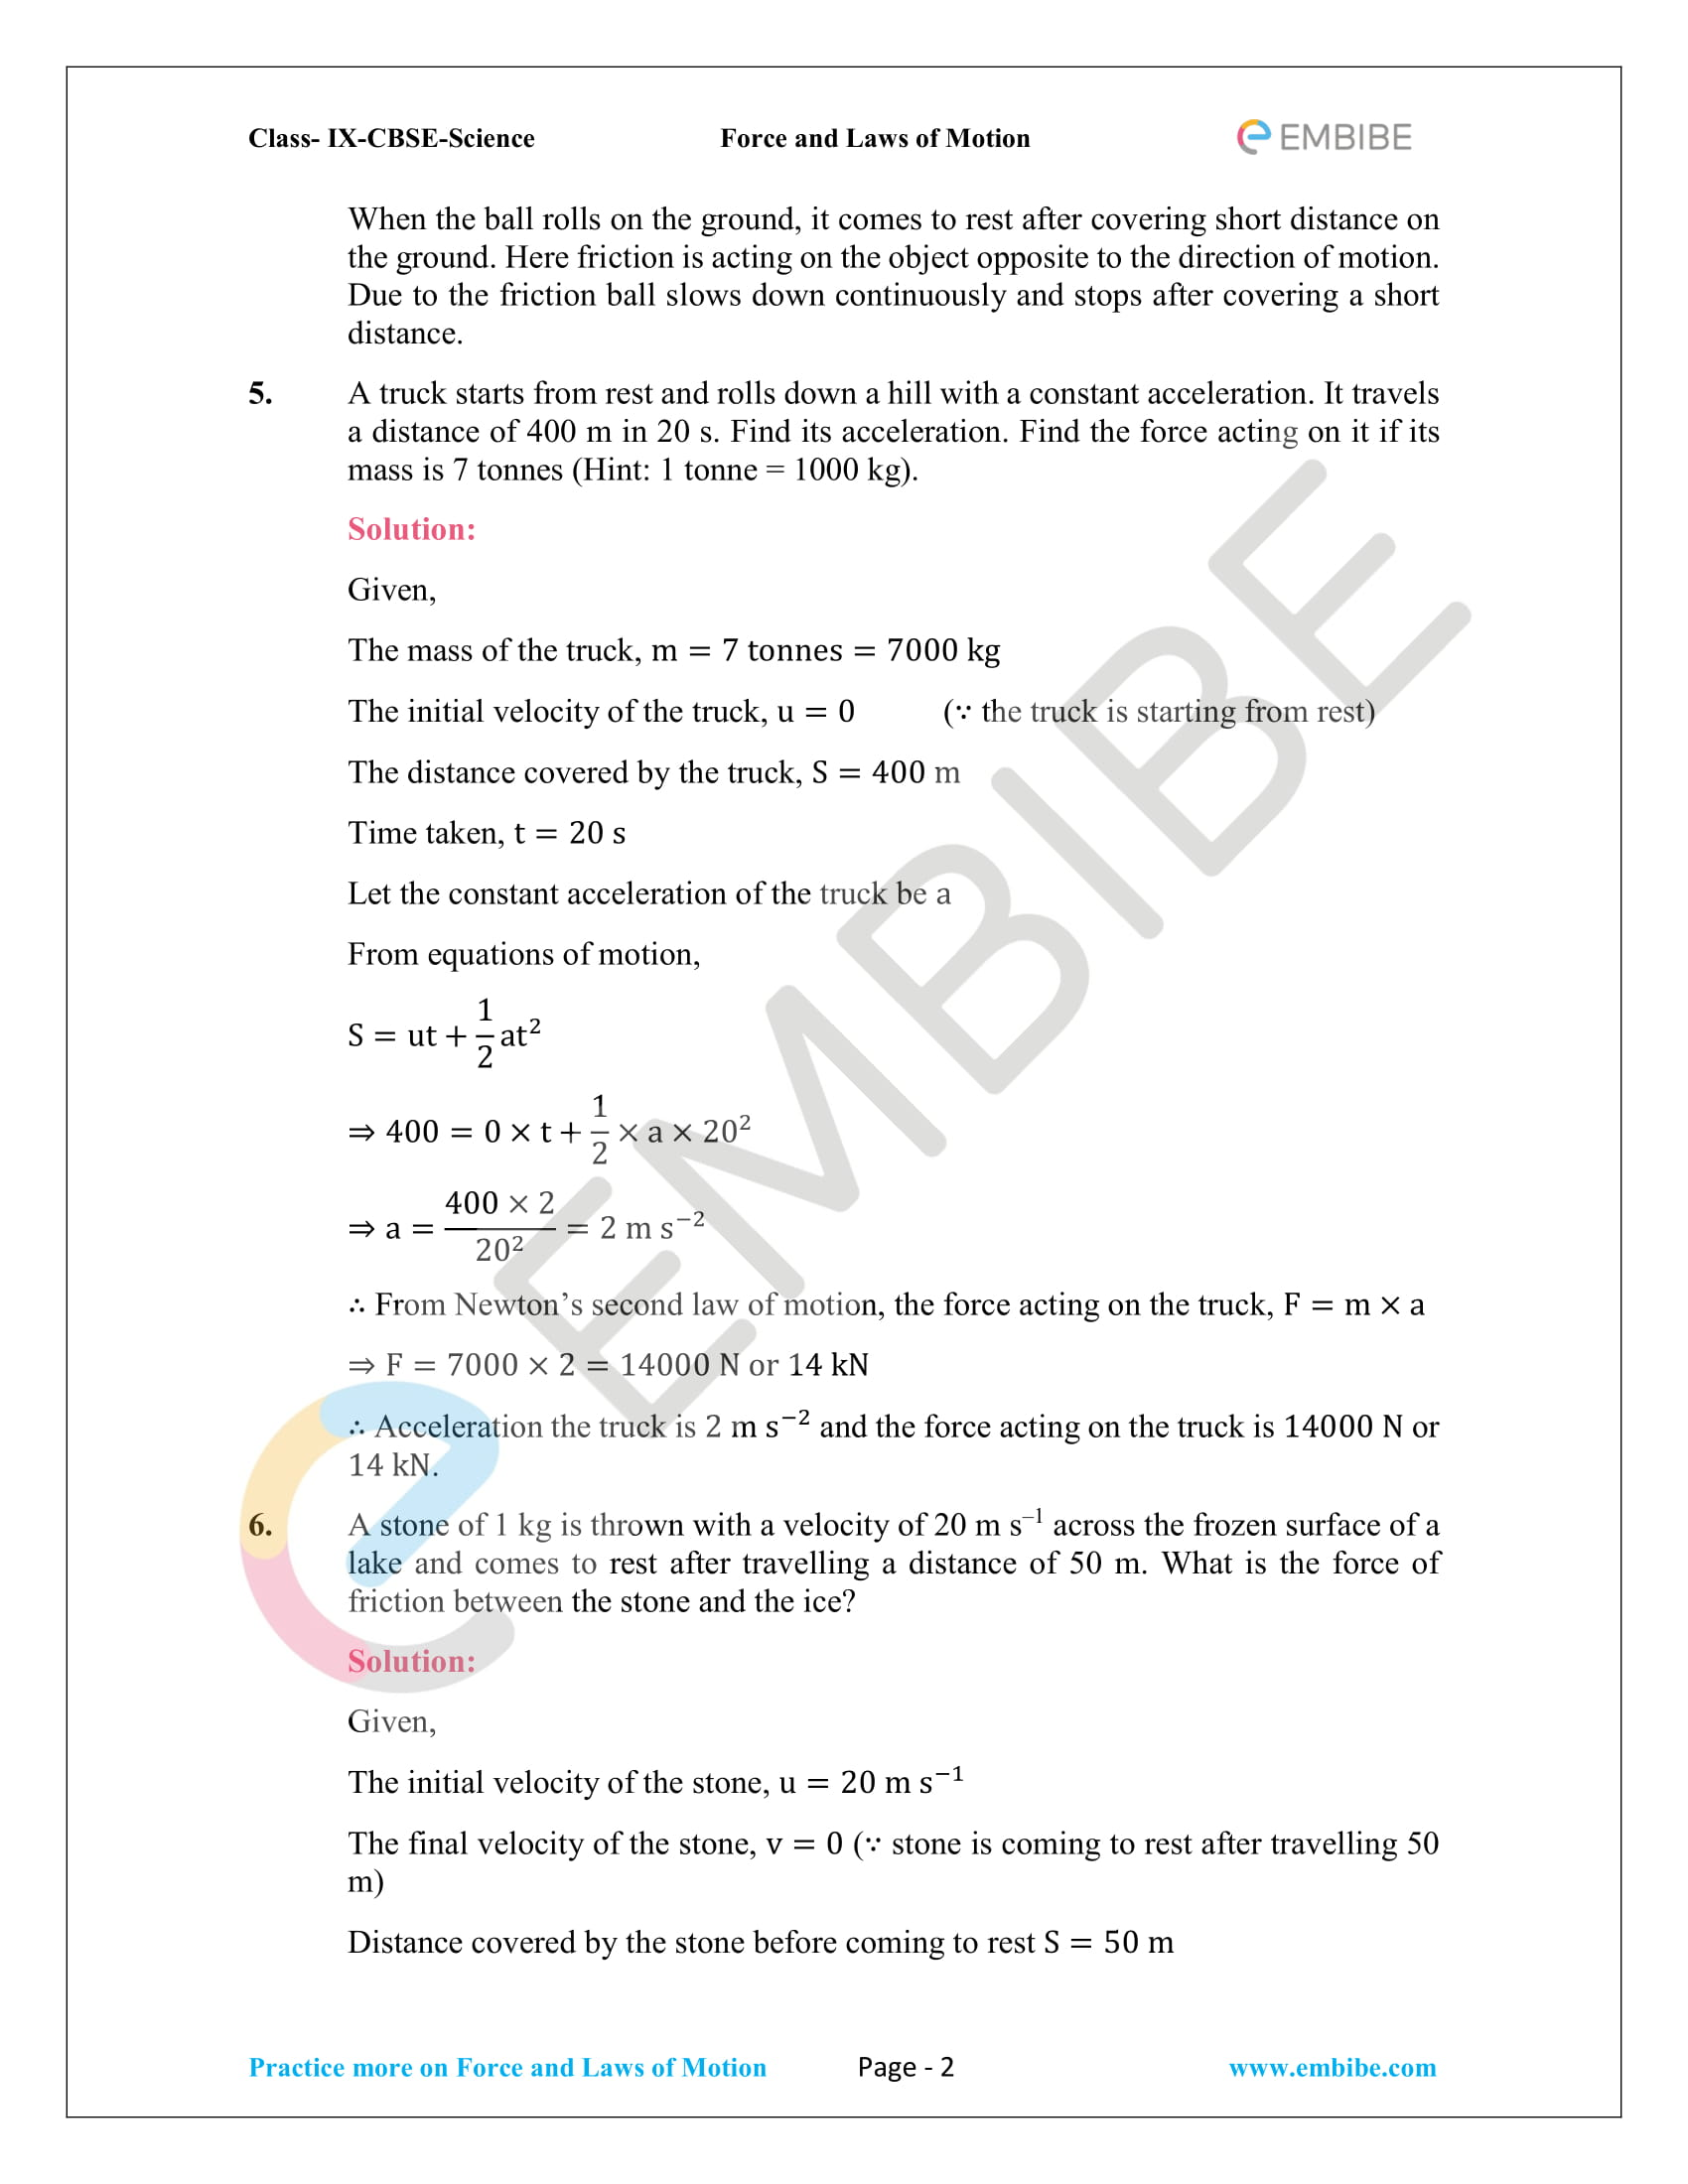 Cbse Ncert Solutions For Class 9 Science Chapter 9 Force And Laws Of Motion